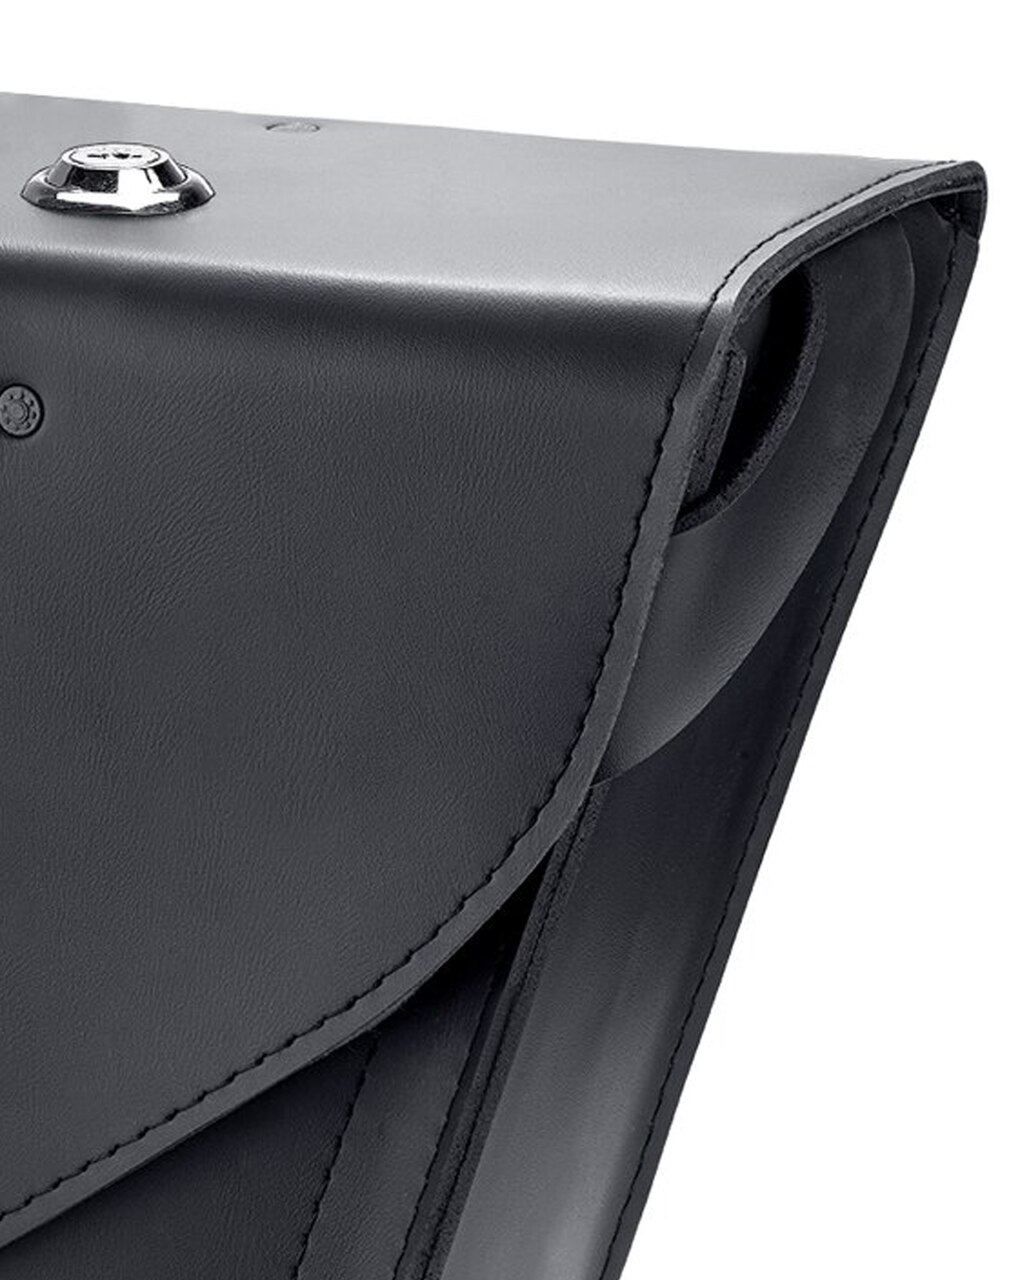 Viking Dark Age Compact Plain Leather Motorcycle Saddlebags For Sportster Iron 1200 Side View